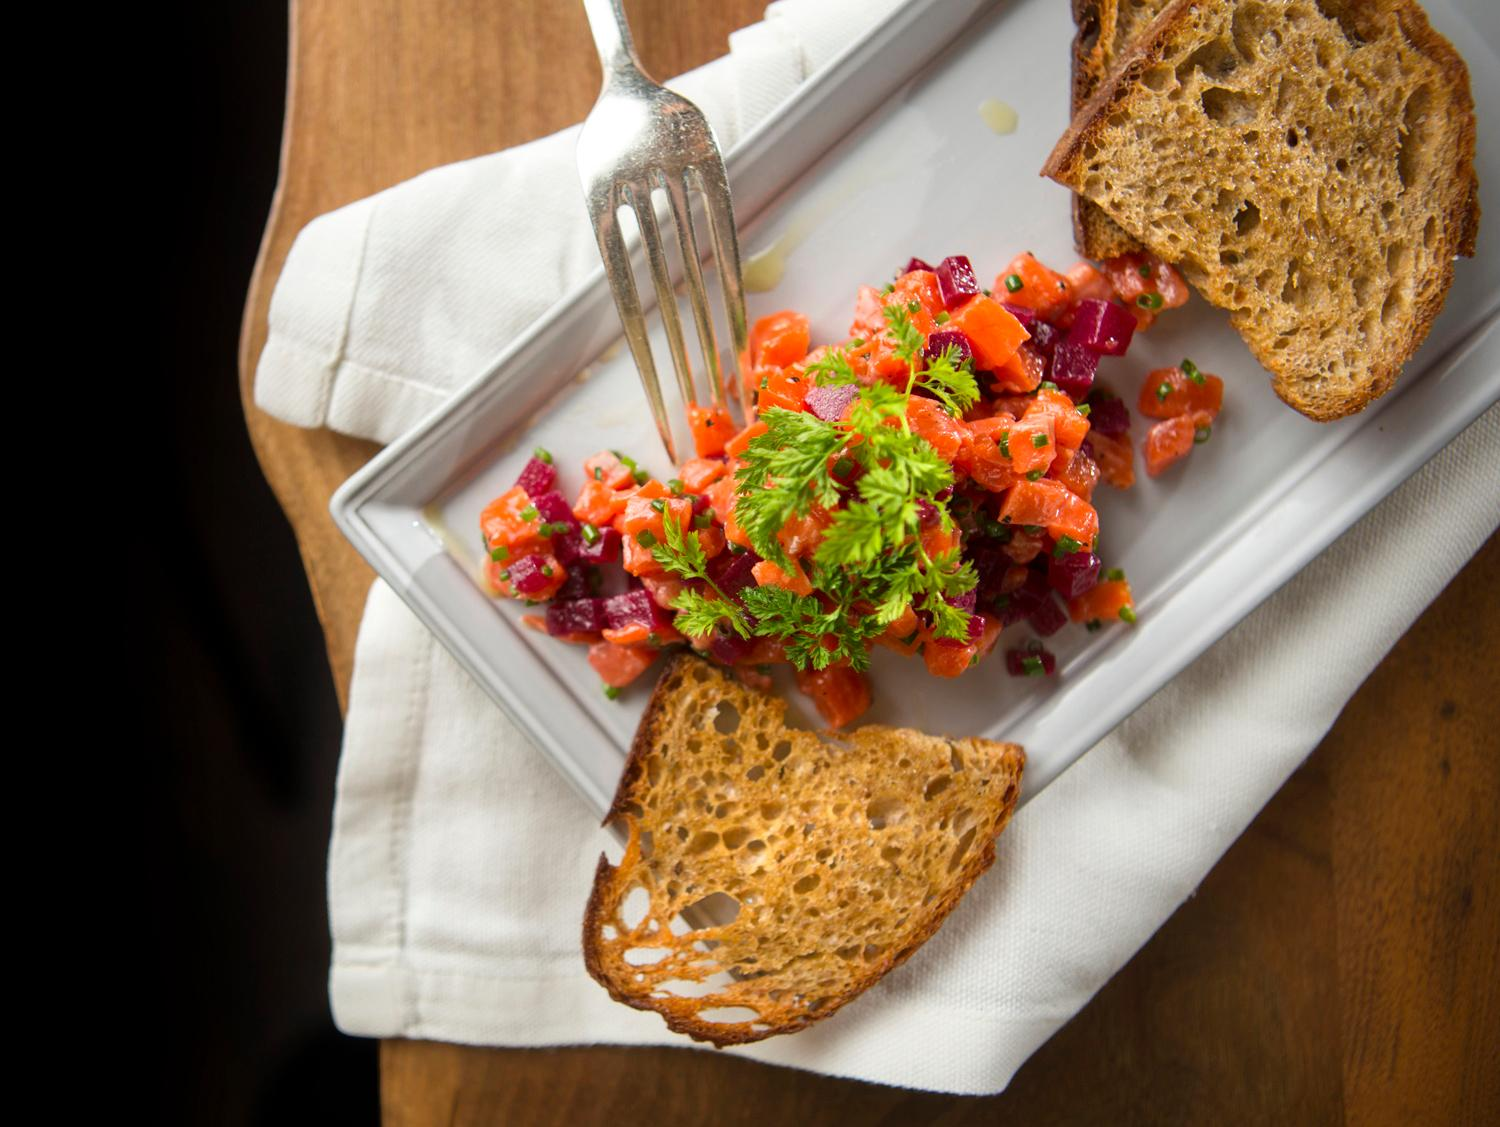 As an appetizer, Chef Joe Ritchie will be serving a Sockey Tartare with smoked red beet and rye crostini, during restaurant week at Goldfinch Tavern at the Four Seasons Hotel. Other appetizers included Shaved Asparagus Salad and Half Shell Pacific Oysters. (Sy Bean / Seattle Refined)